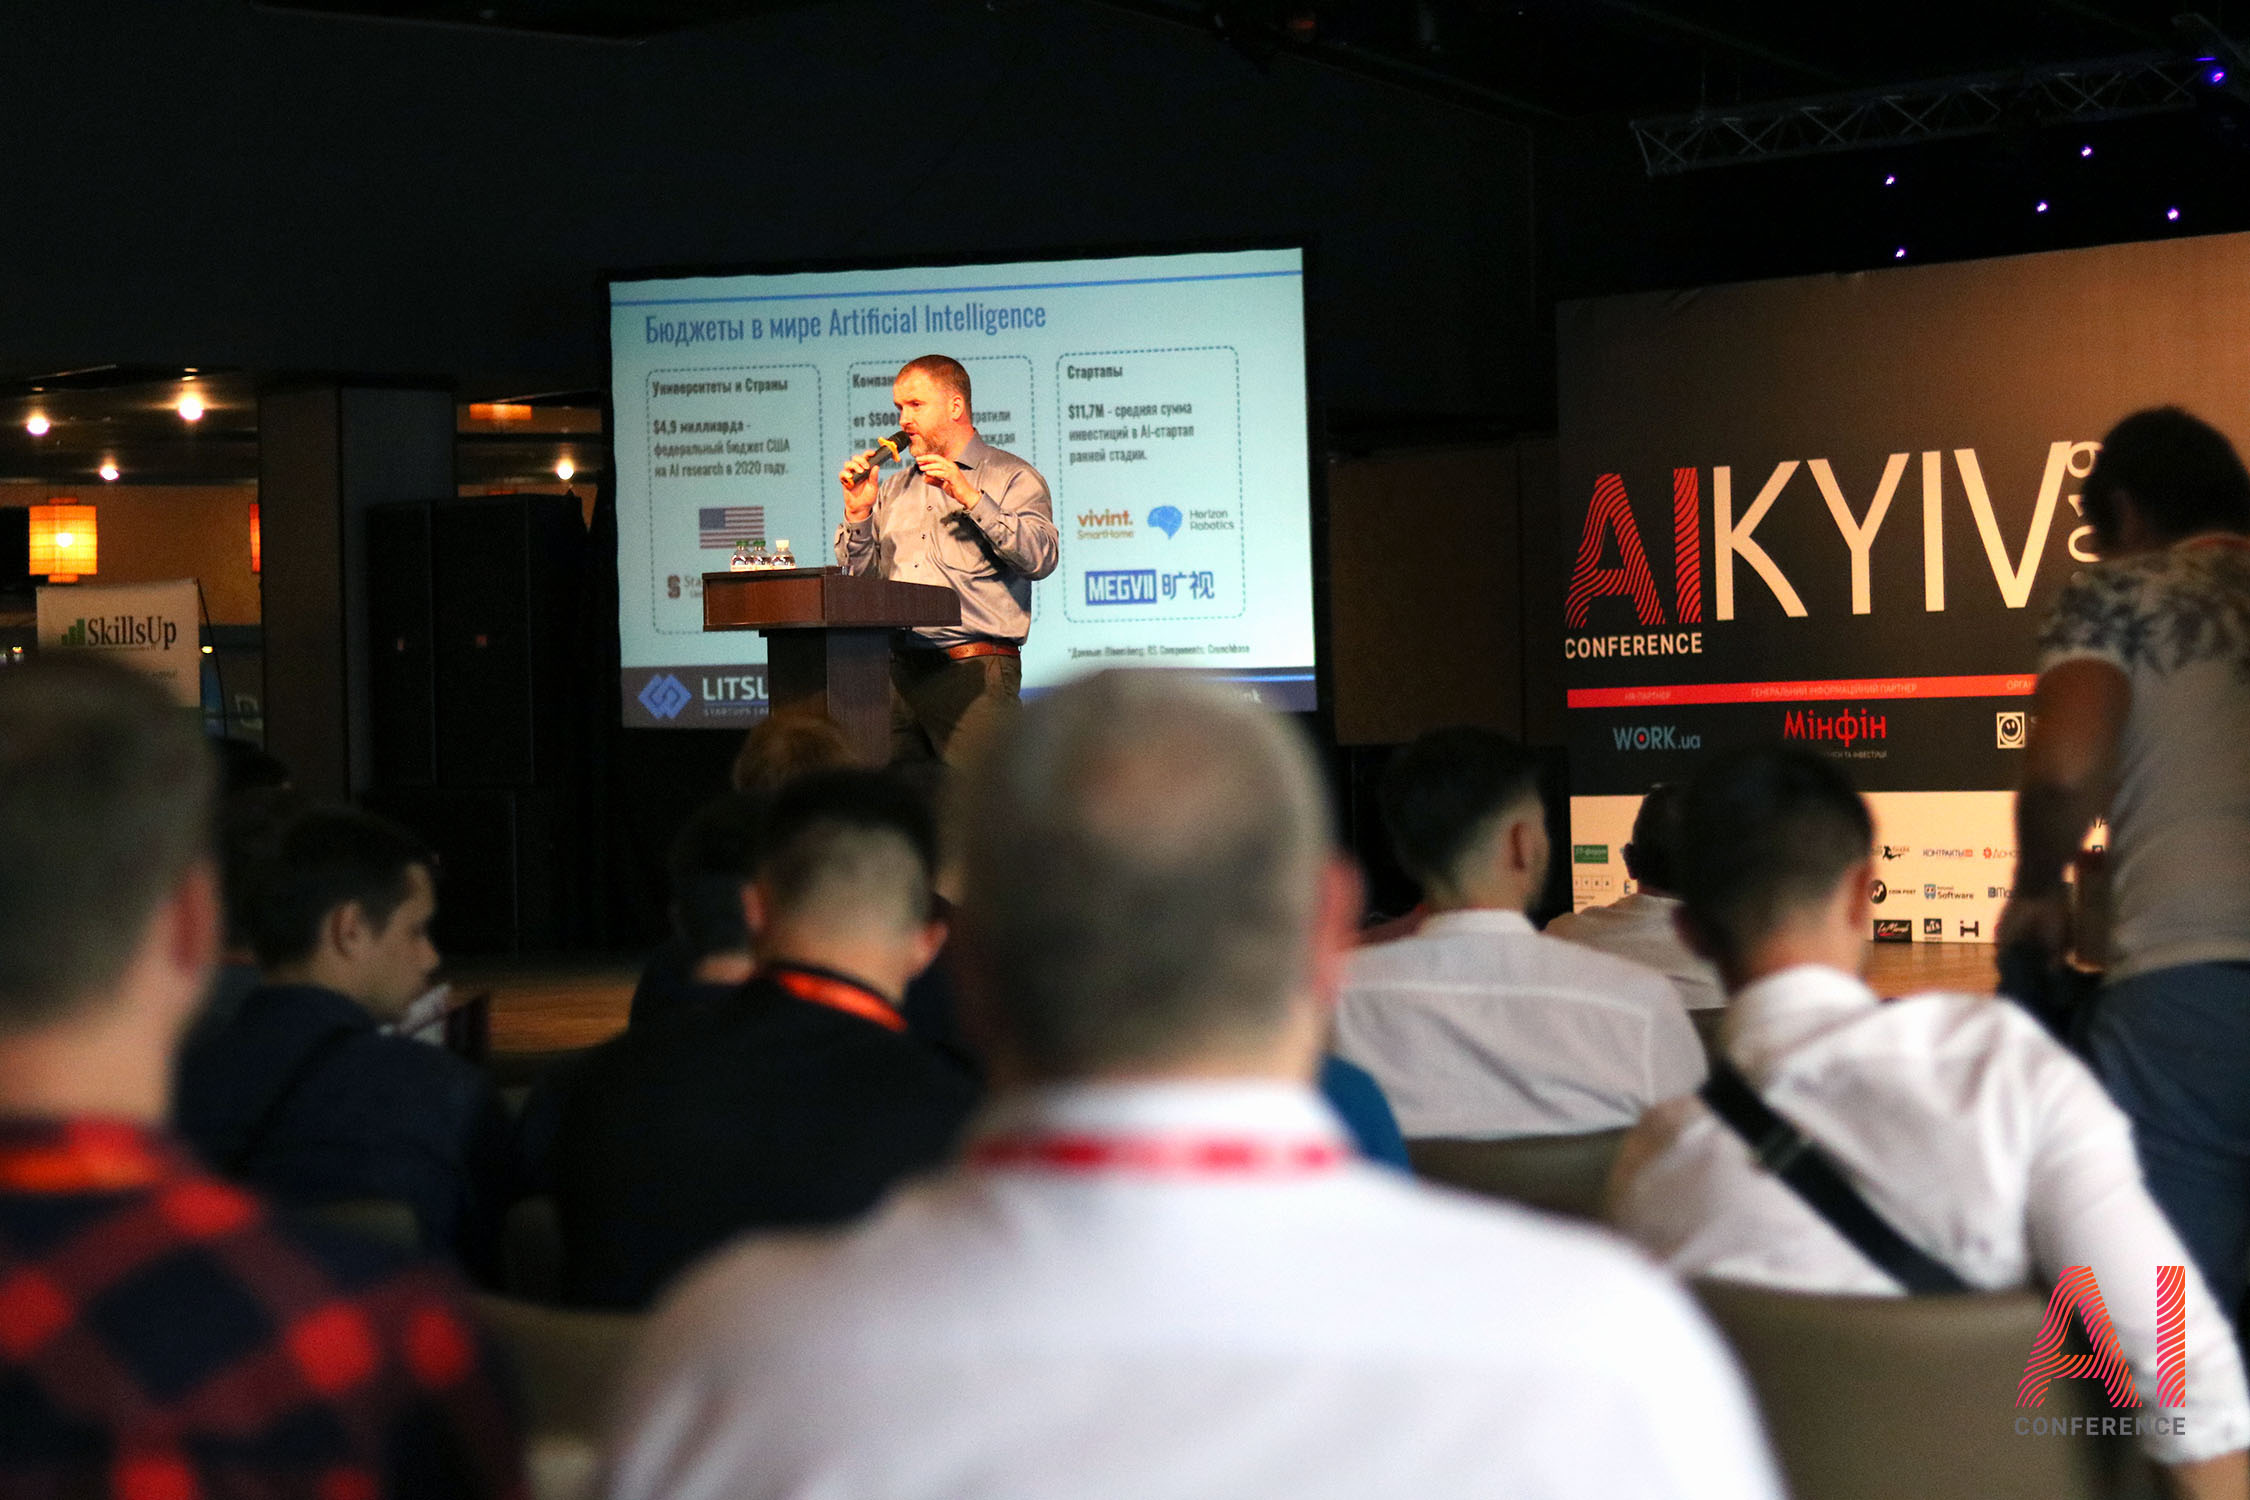 3 Results of AI Conference Kyiv 2019